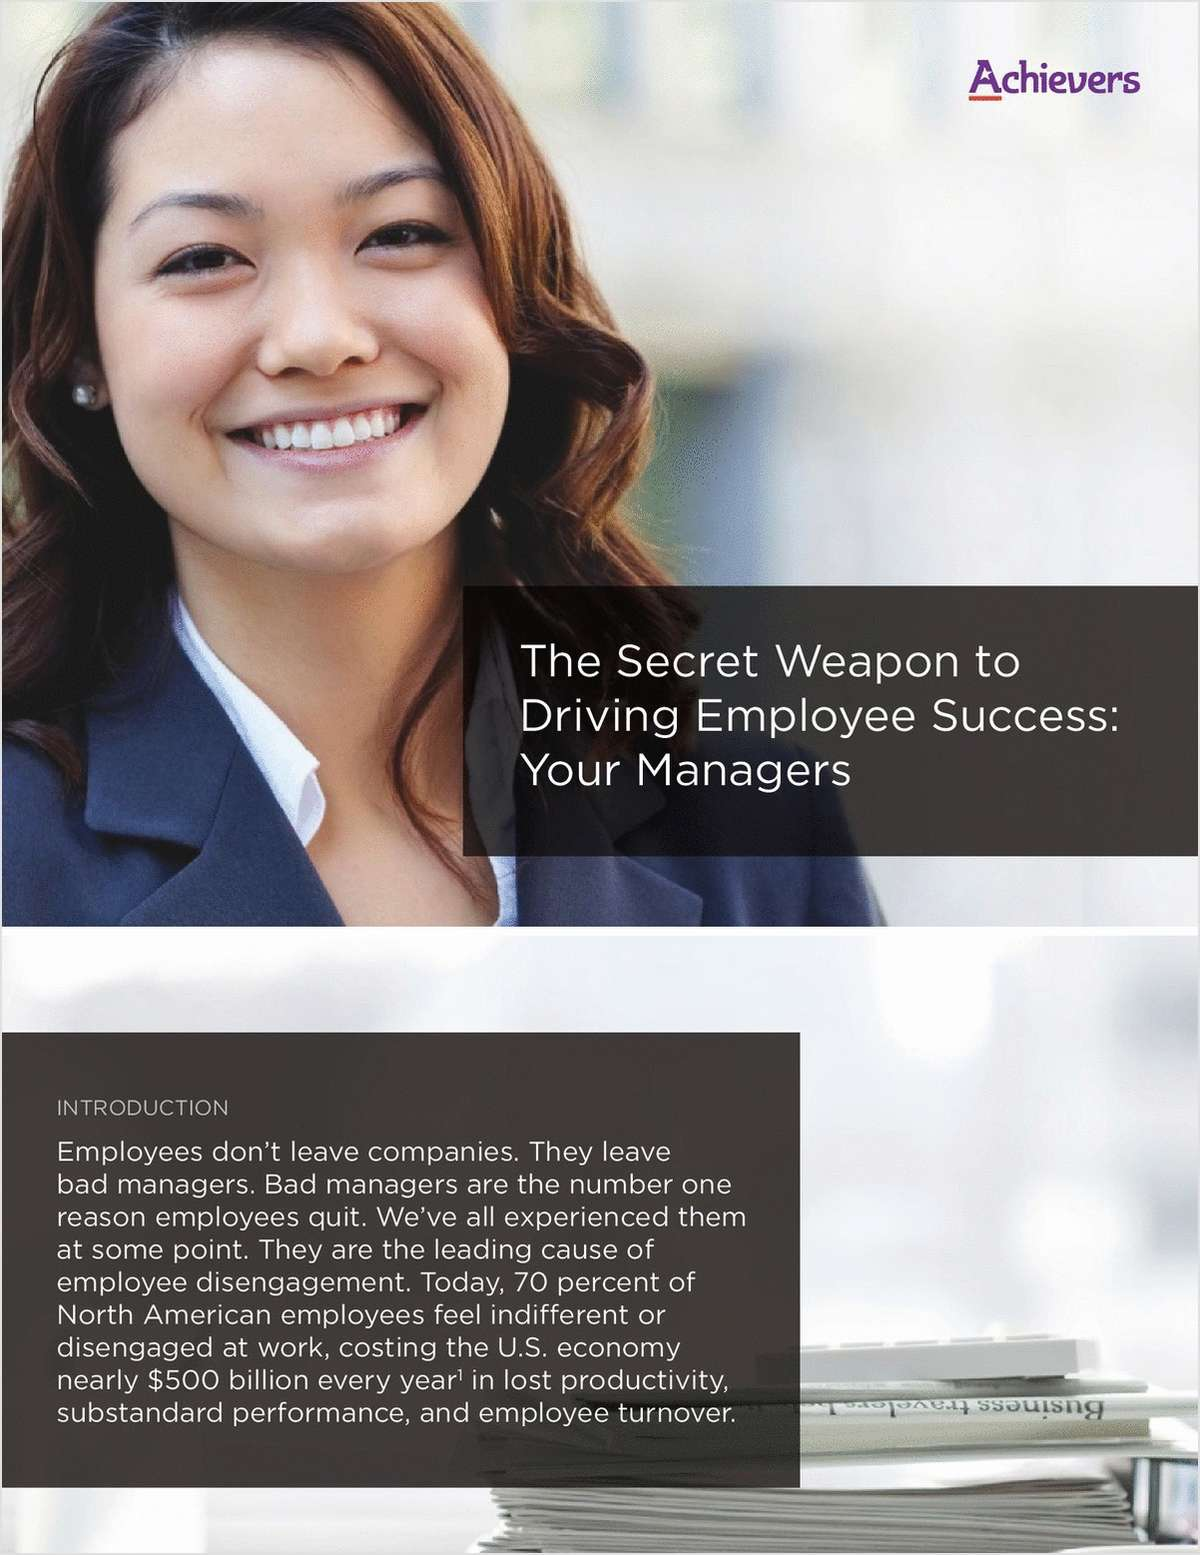 The Secret Weapon to Driving Employee Success